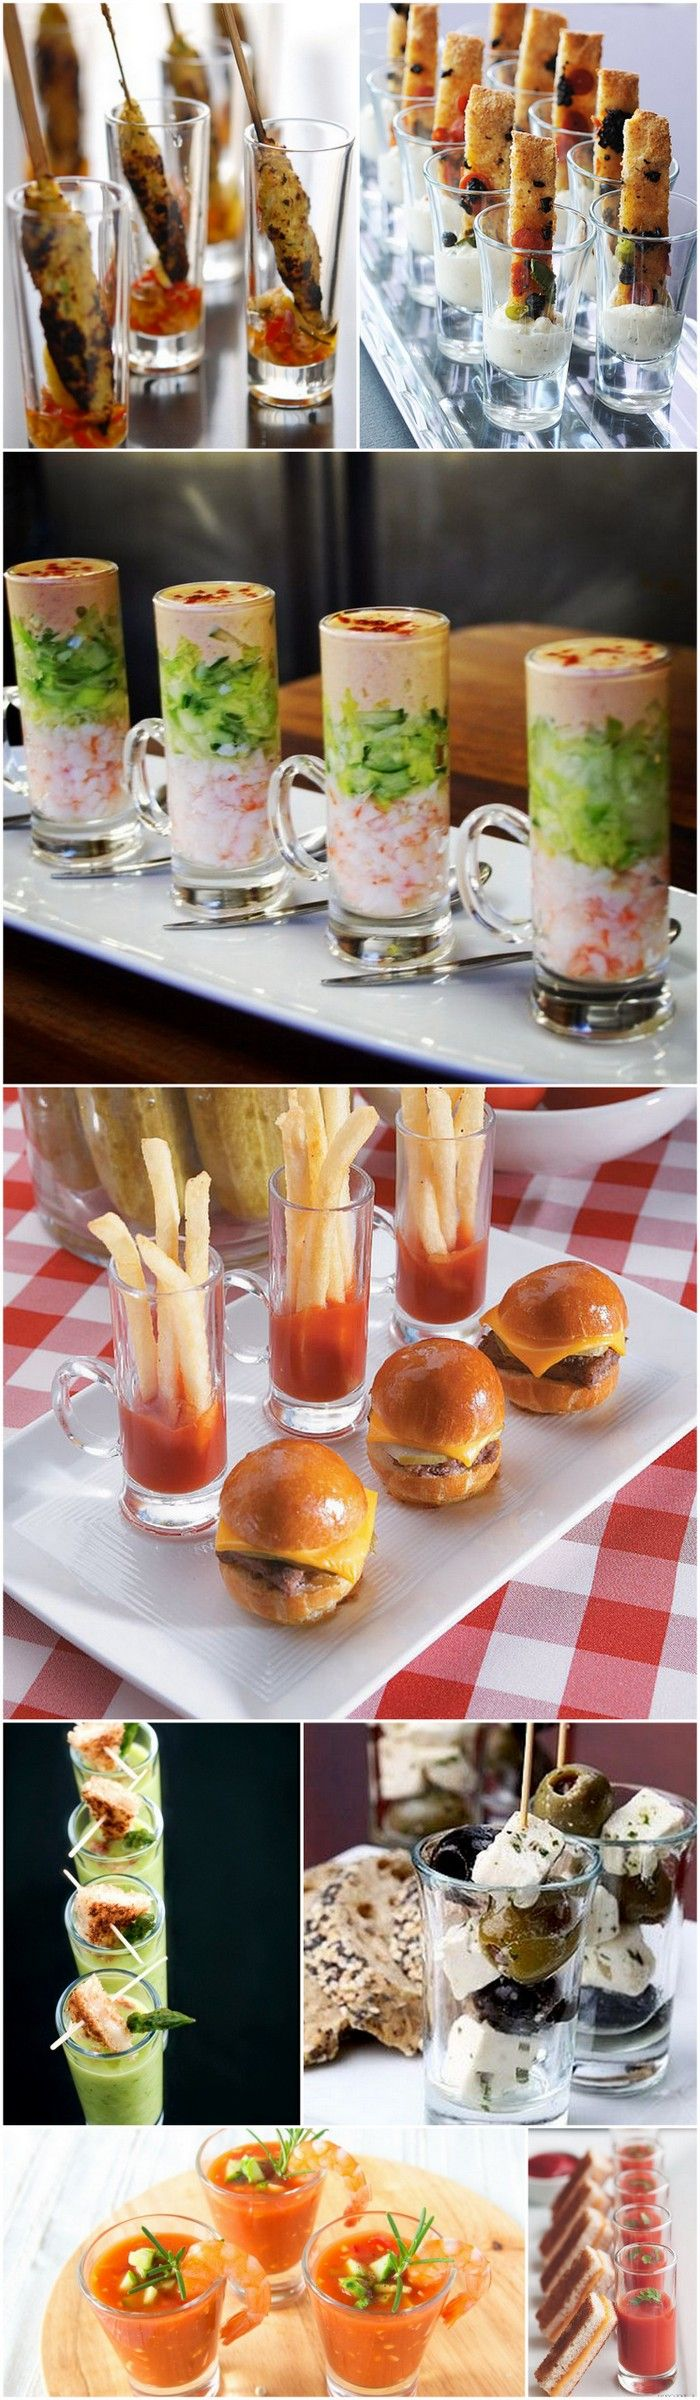 25 best ideas about party canapes on pinterest canape for Canape party ideas